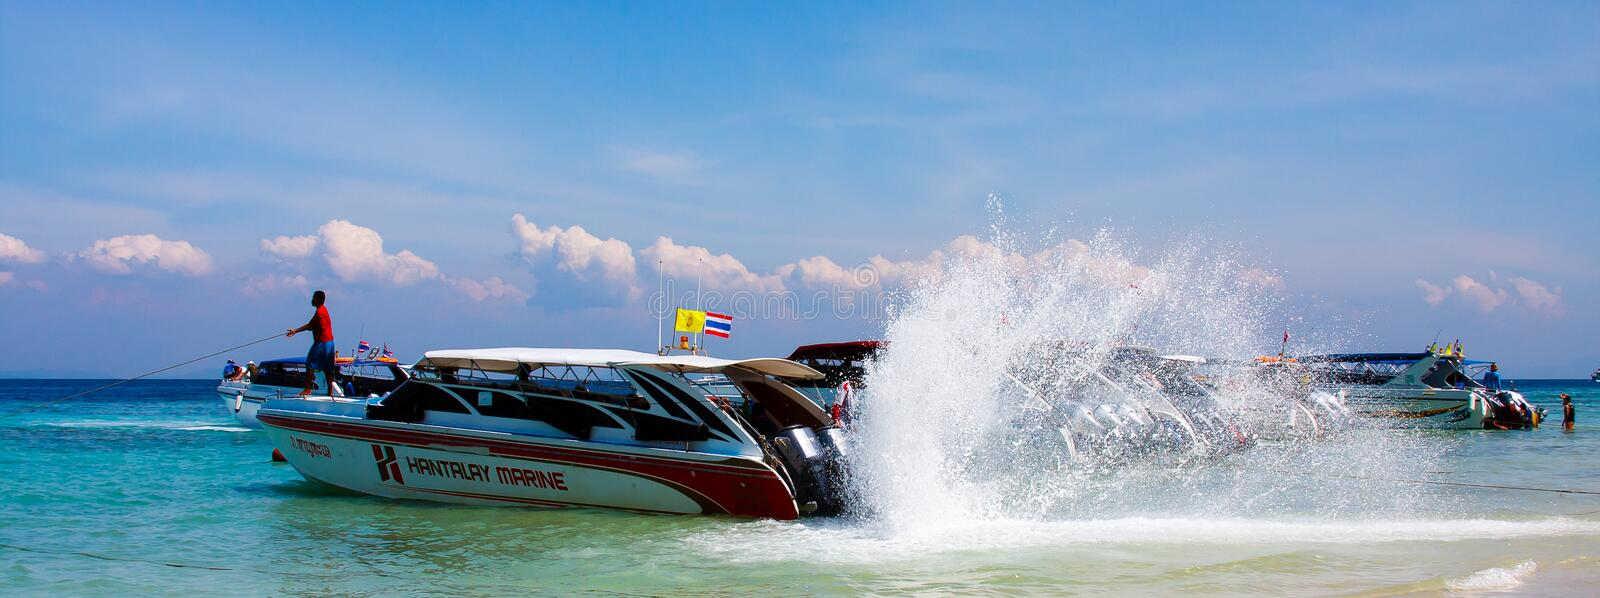 The speedboat, on the waterfront, cleans the propeller. royalty free stock images